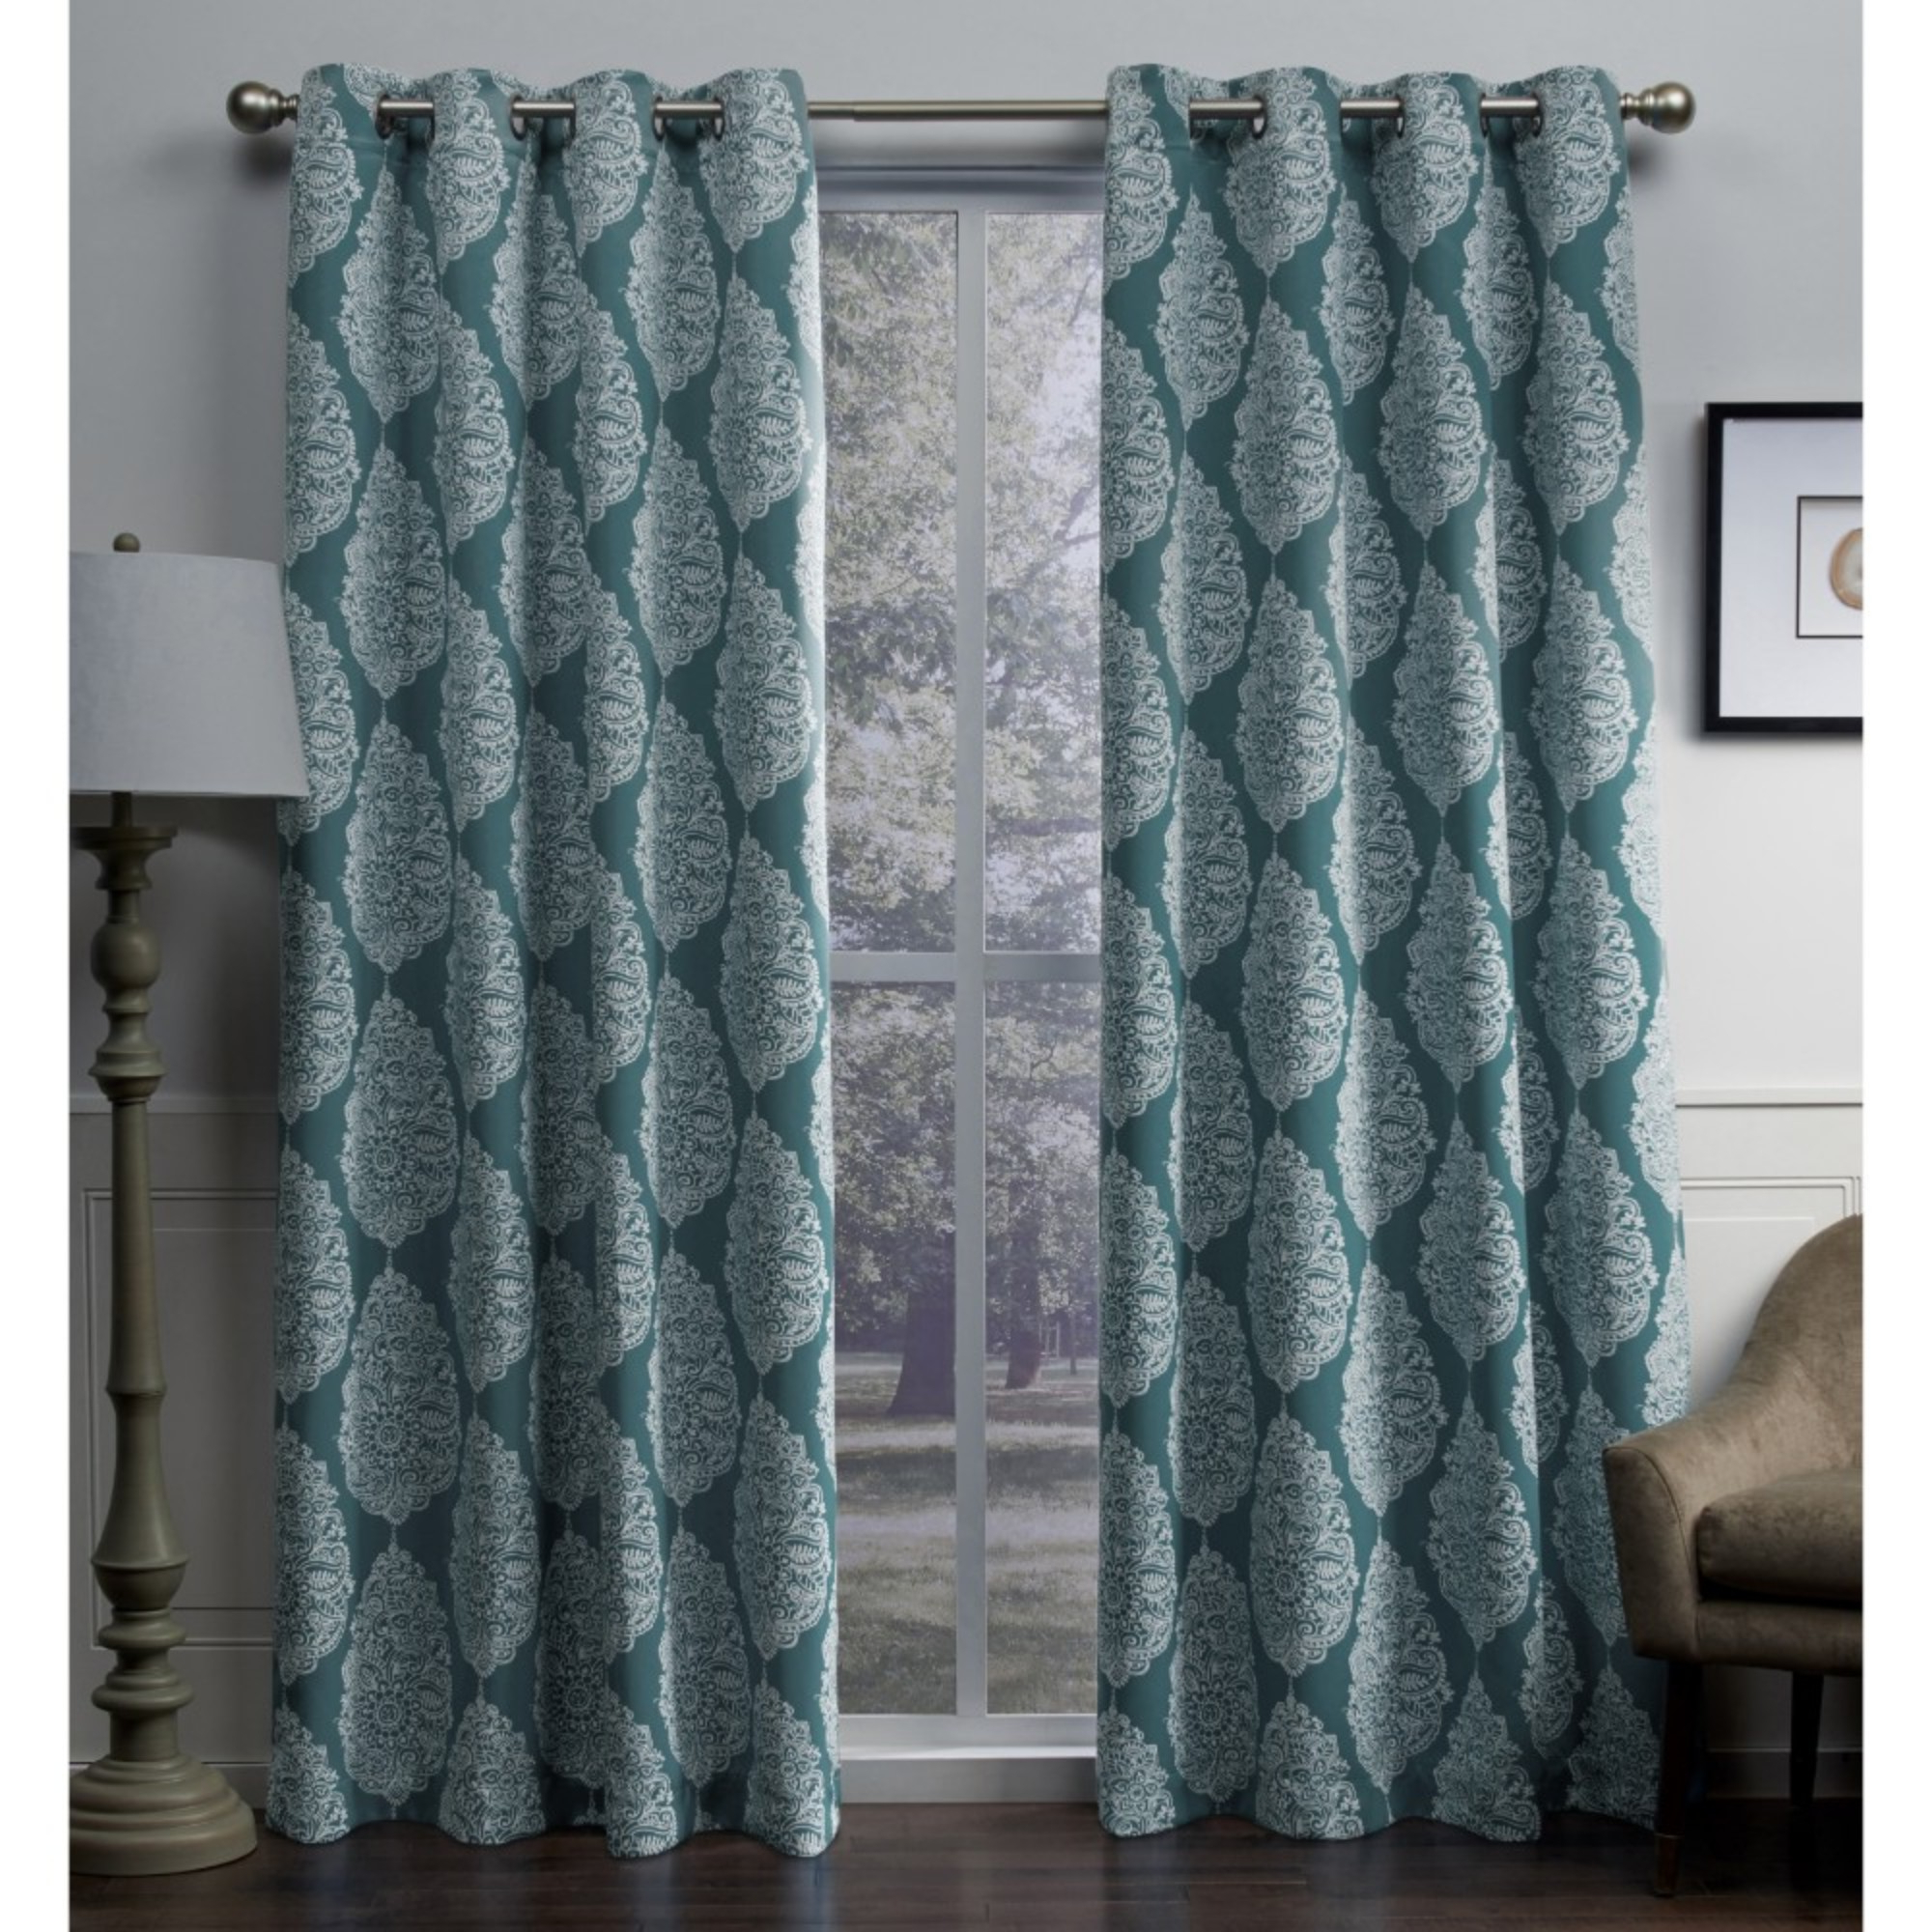 Best And Newest Sateen Twill Weave Insulated Blackout Window Curtain Panel Pairs In Exclusive Home Queensland Printed Medallion Woven Sateen Woven Window  Curtain Panel Pair With Grommet Top (View 3 of 20)